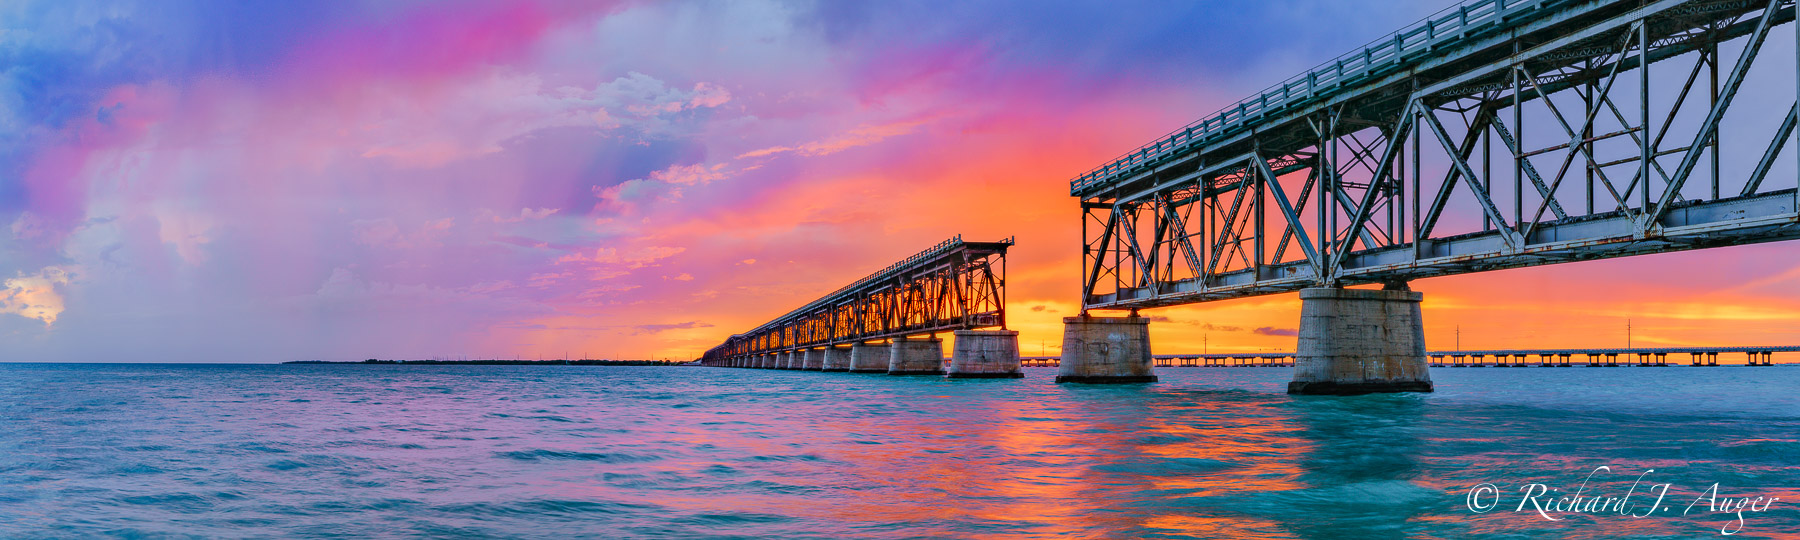 Bahia Honda Bridge, Florida Keys, Photograph, Photographer, Photo, Landscape, Sunset, Ocean, Brilliant